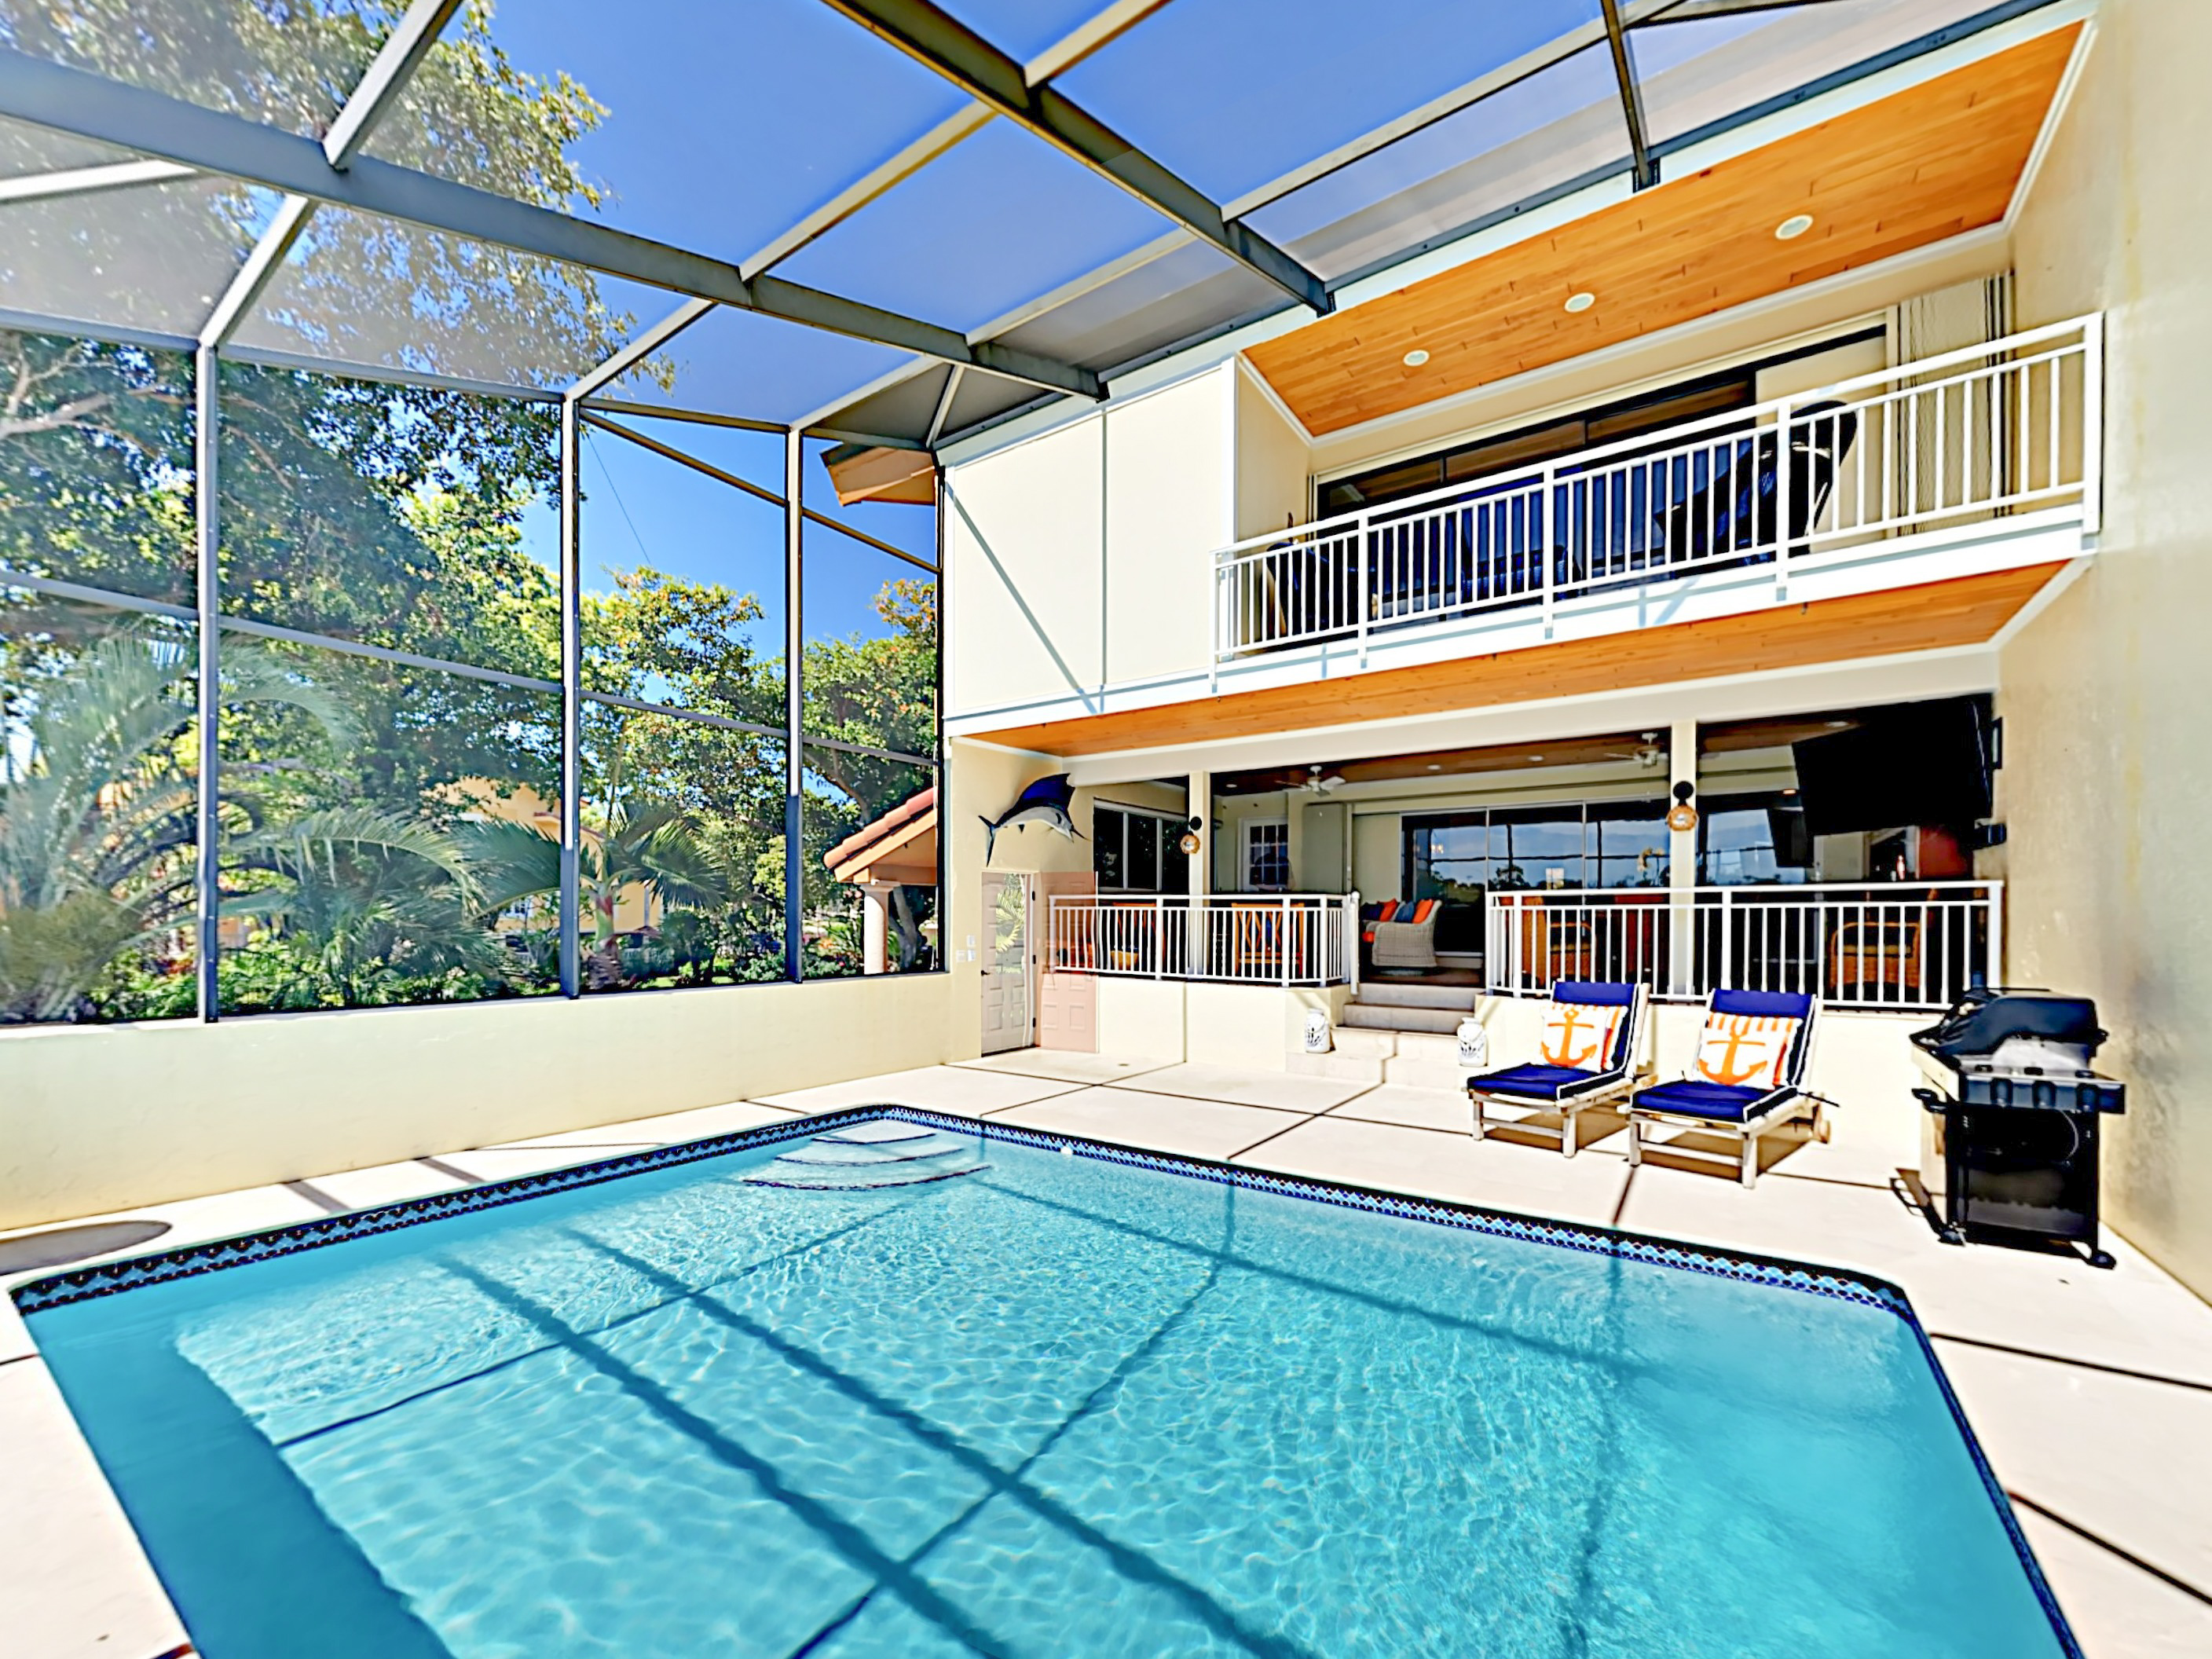 Ocean Reef FL Vacation Rental Welcome! This island